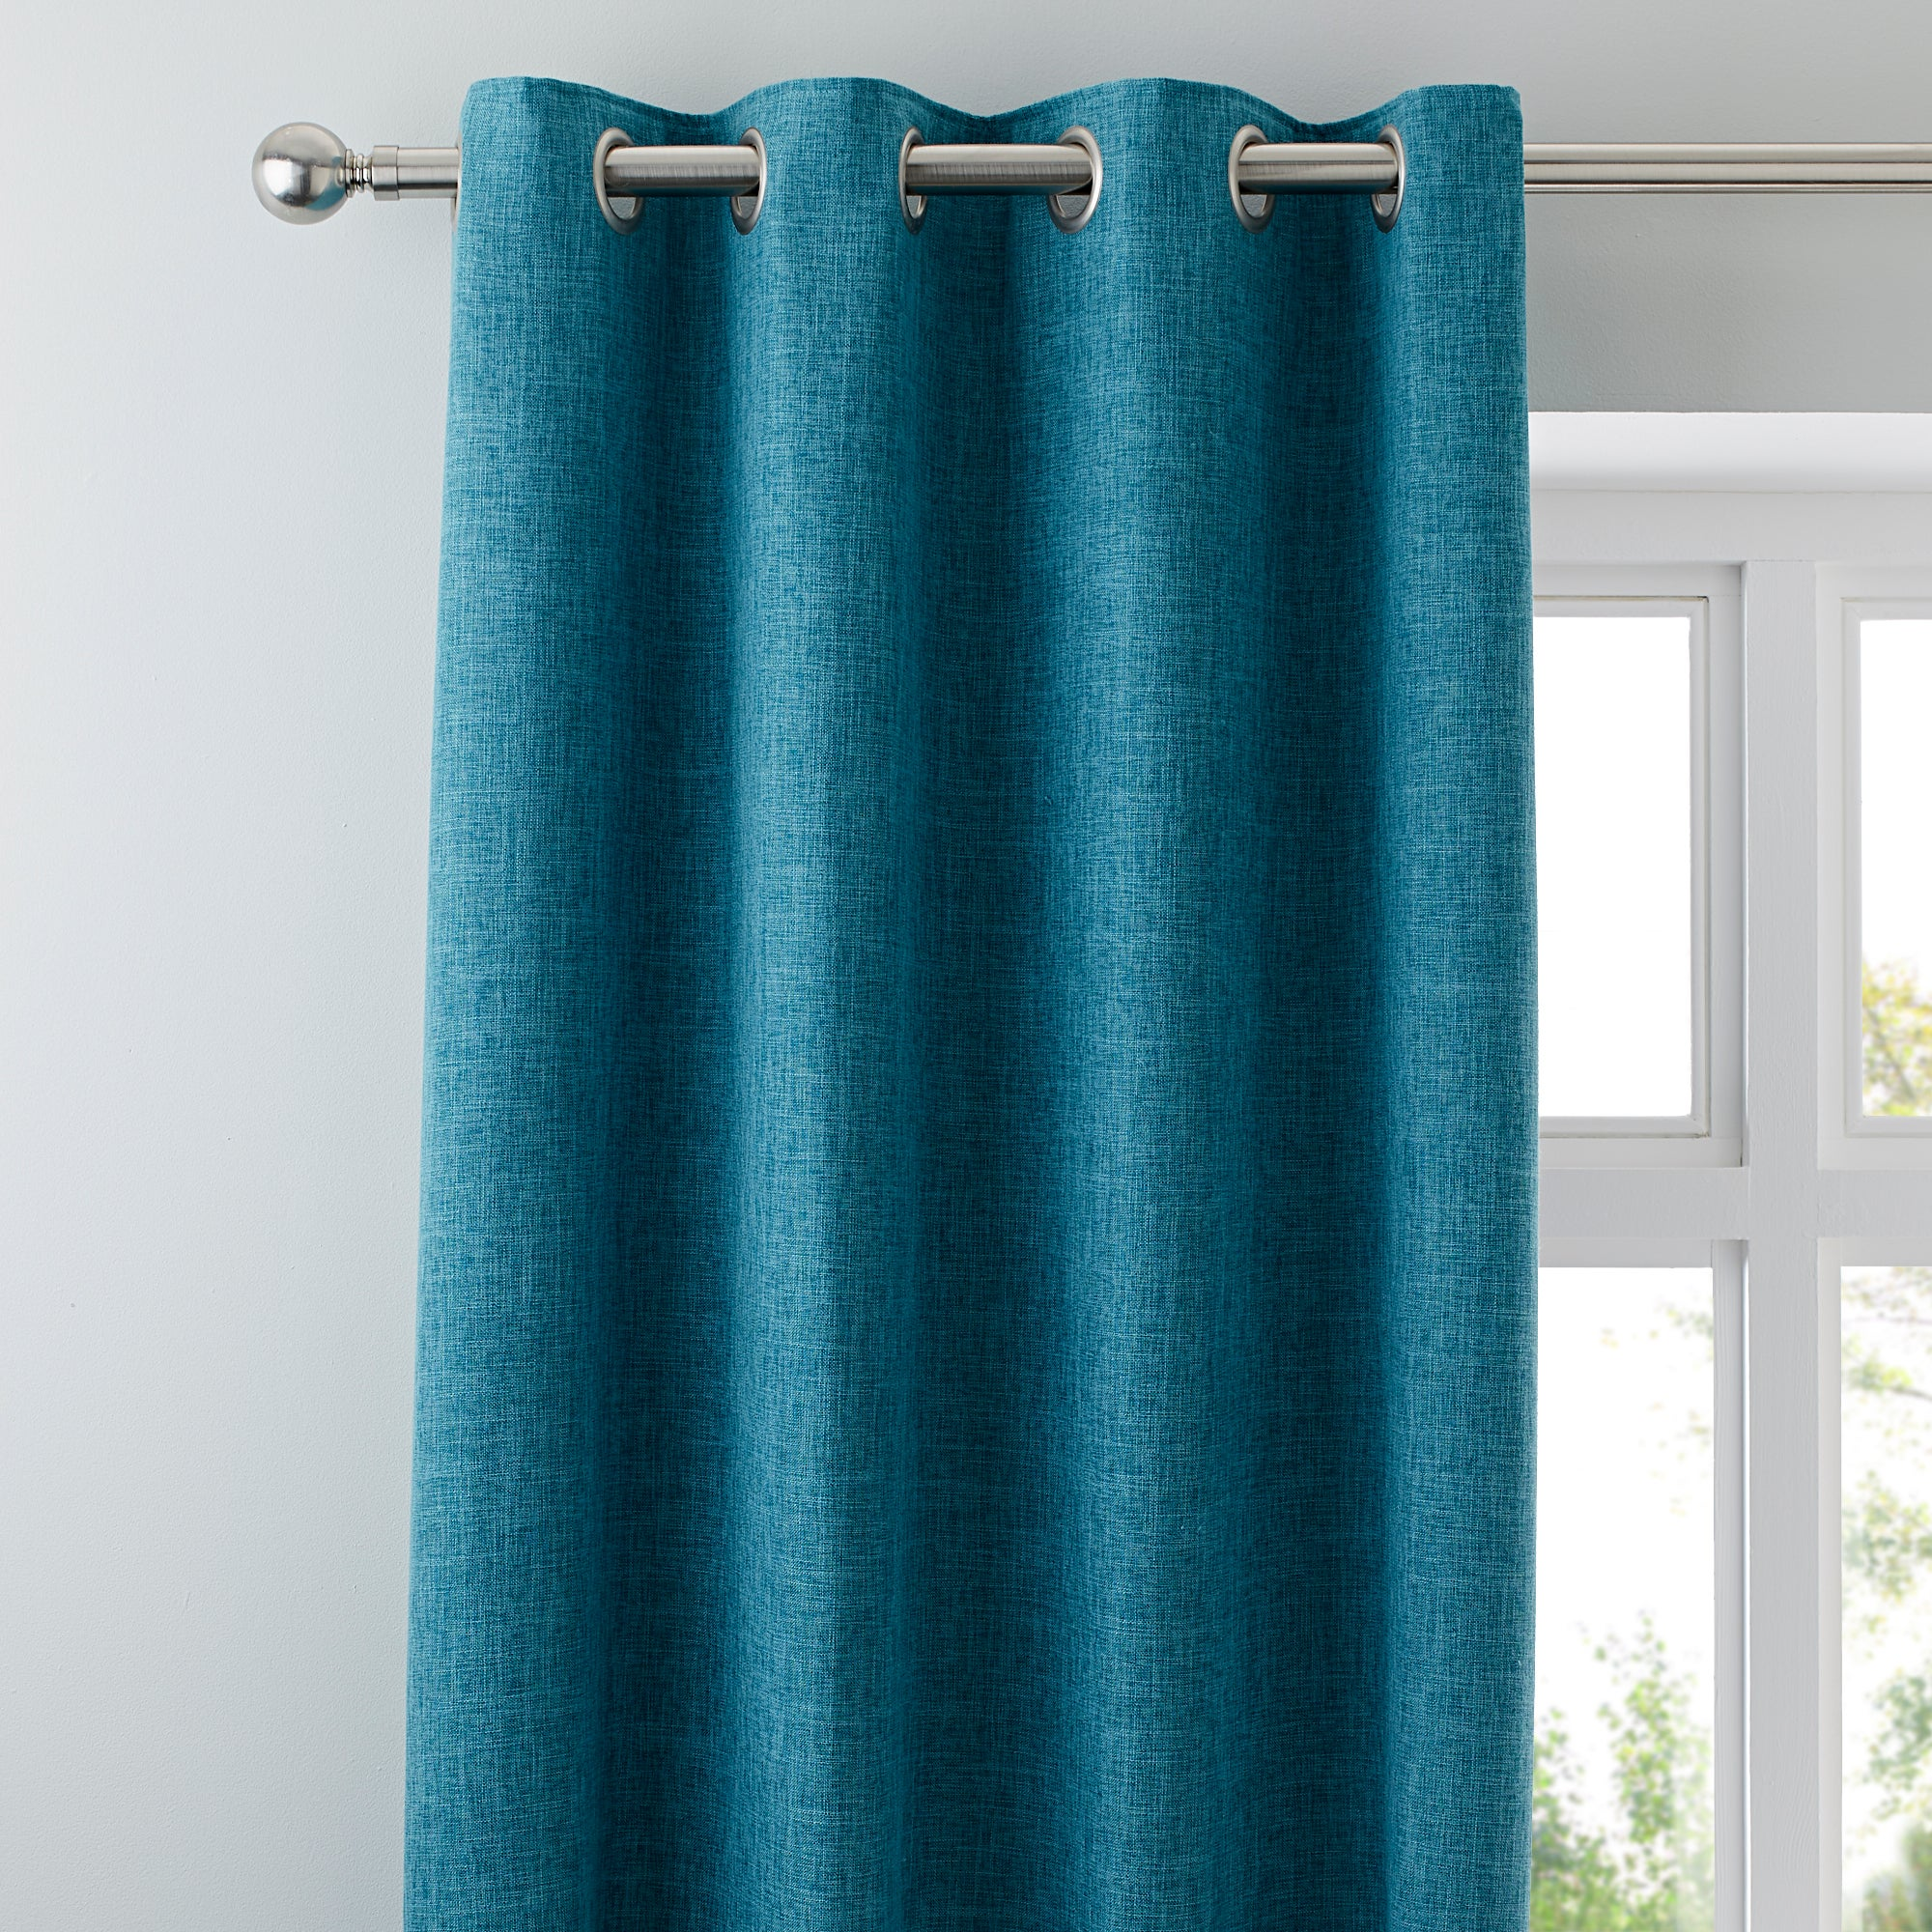 Vermont Teal Lined Eyelet Curtains Teal